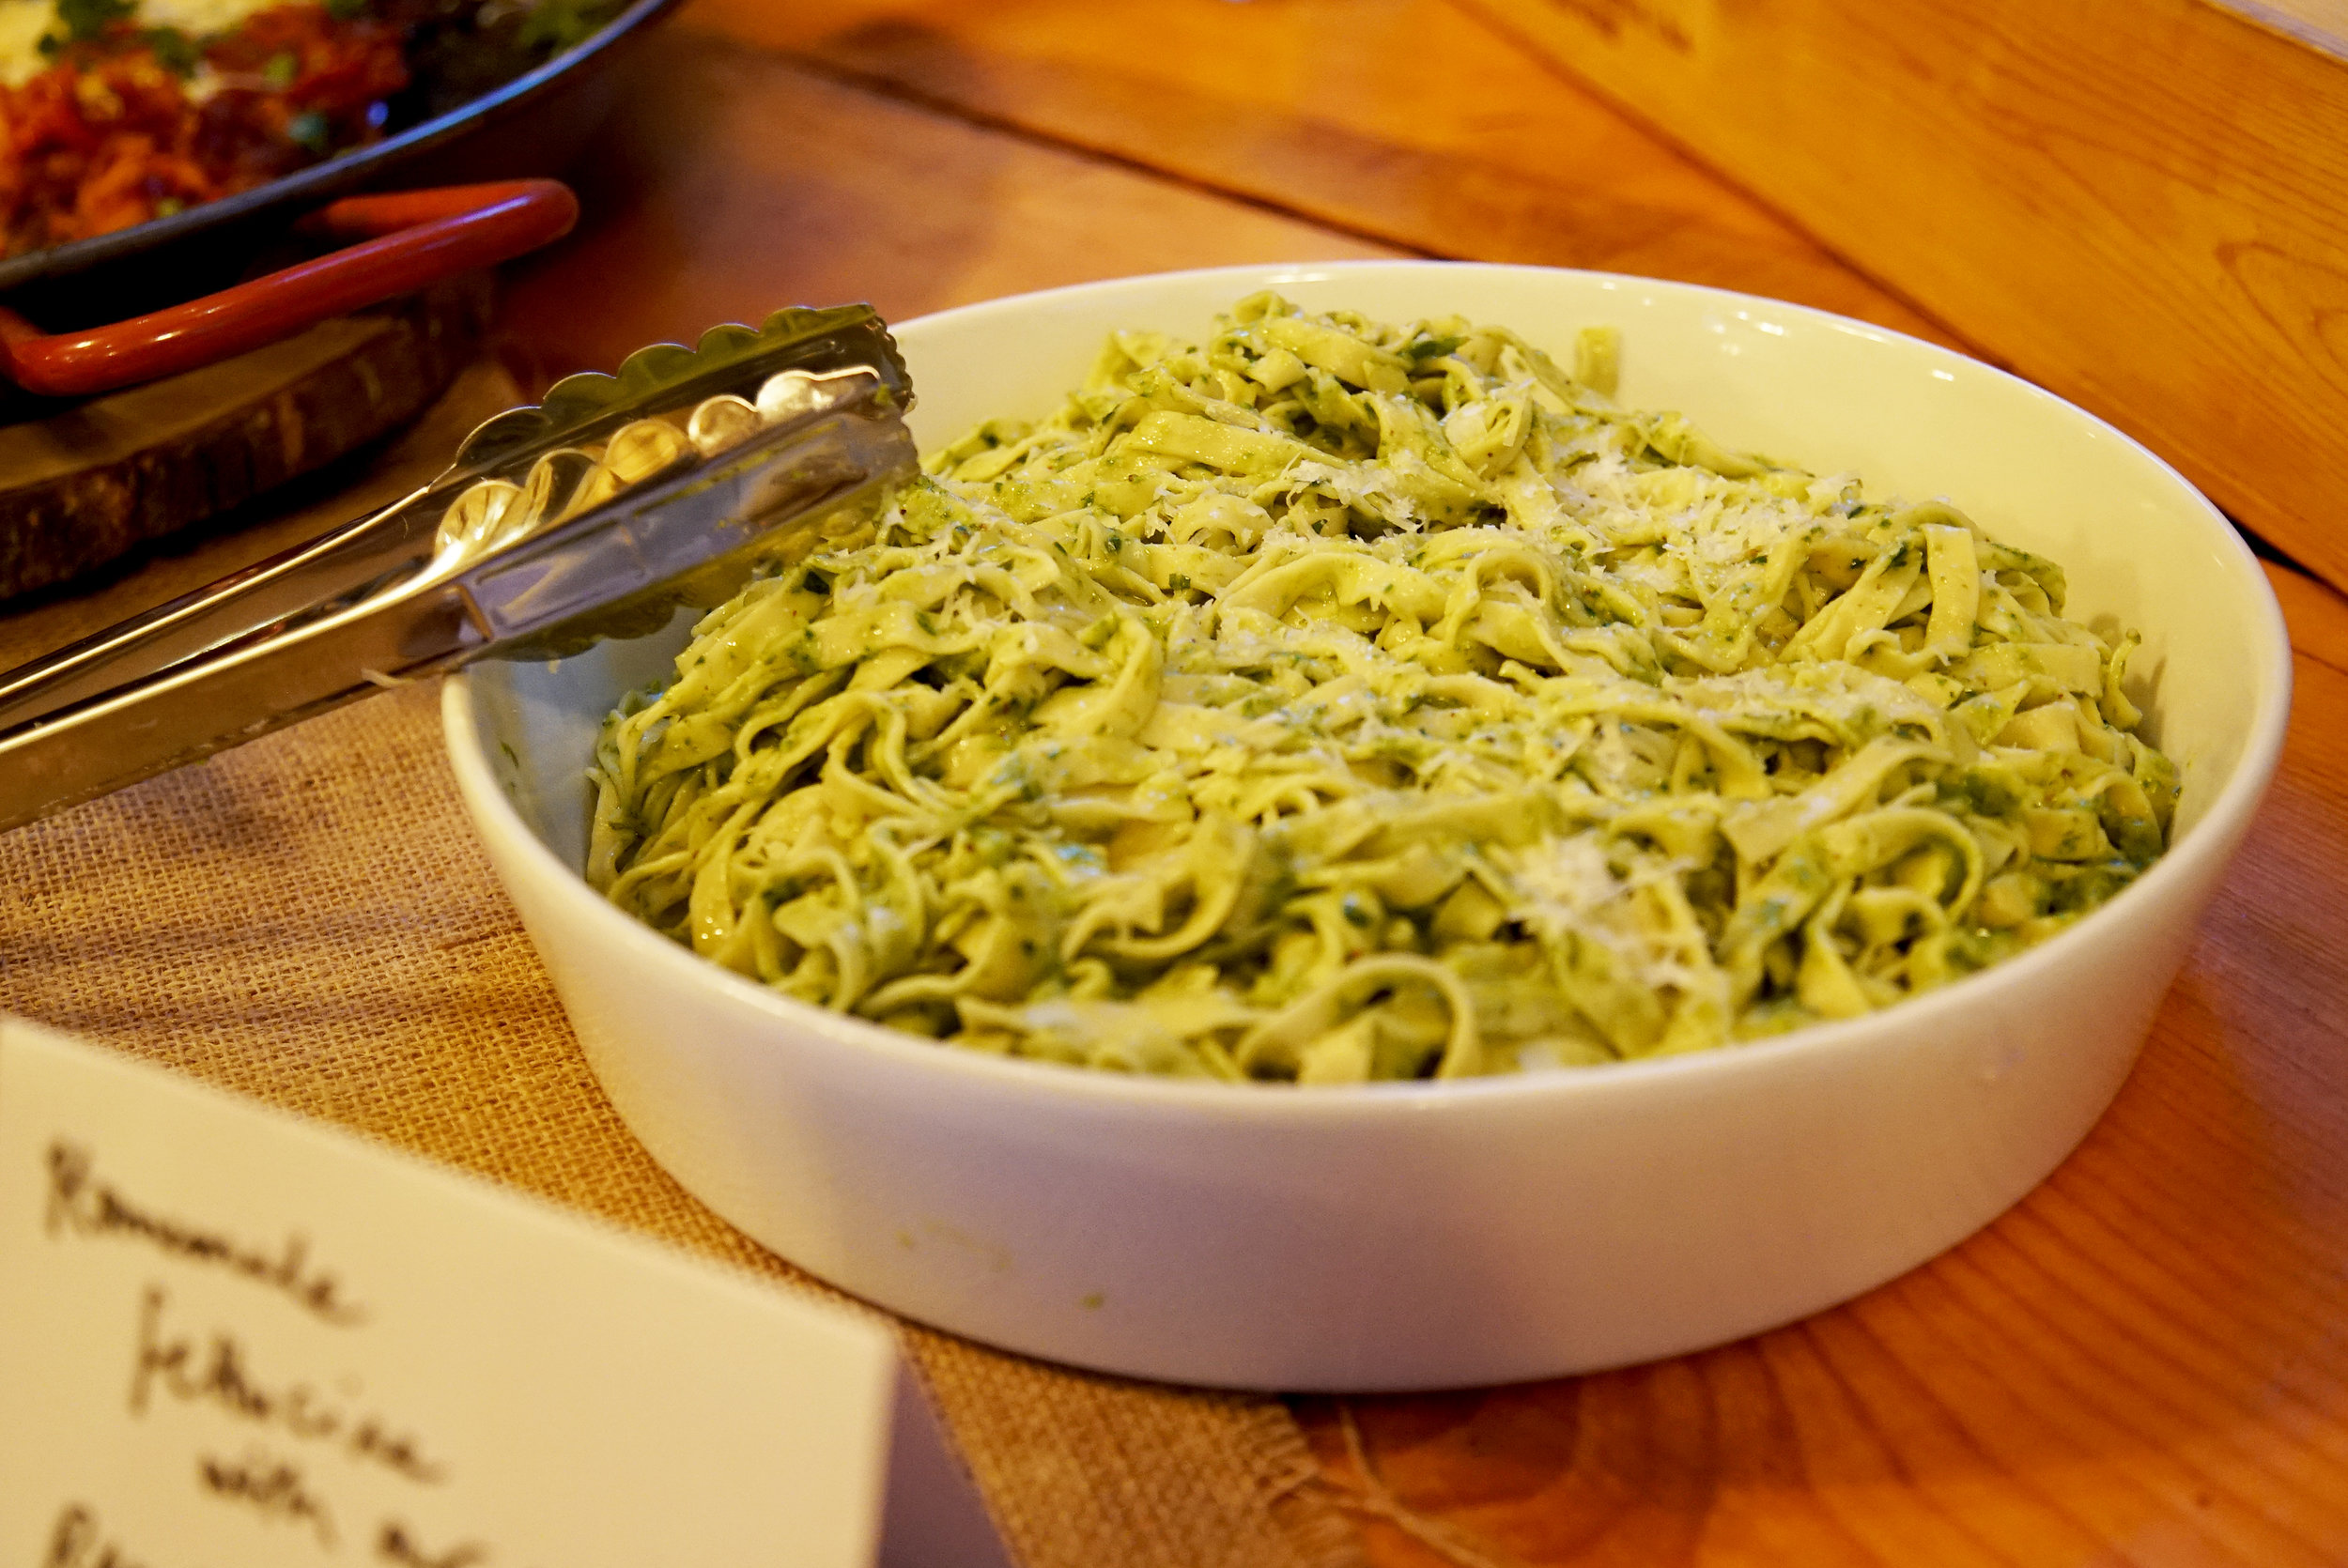 Homemade fettucine with homemade ramp-almond pesto